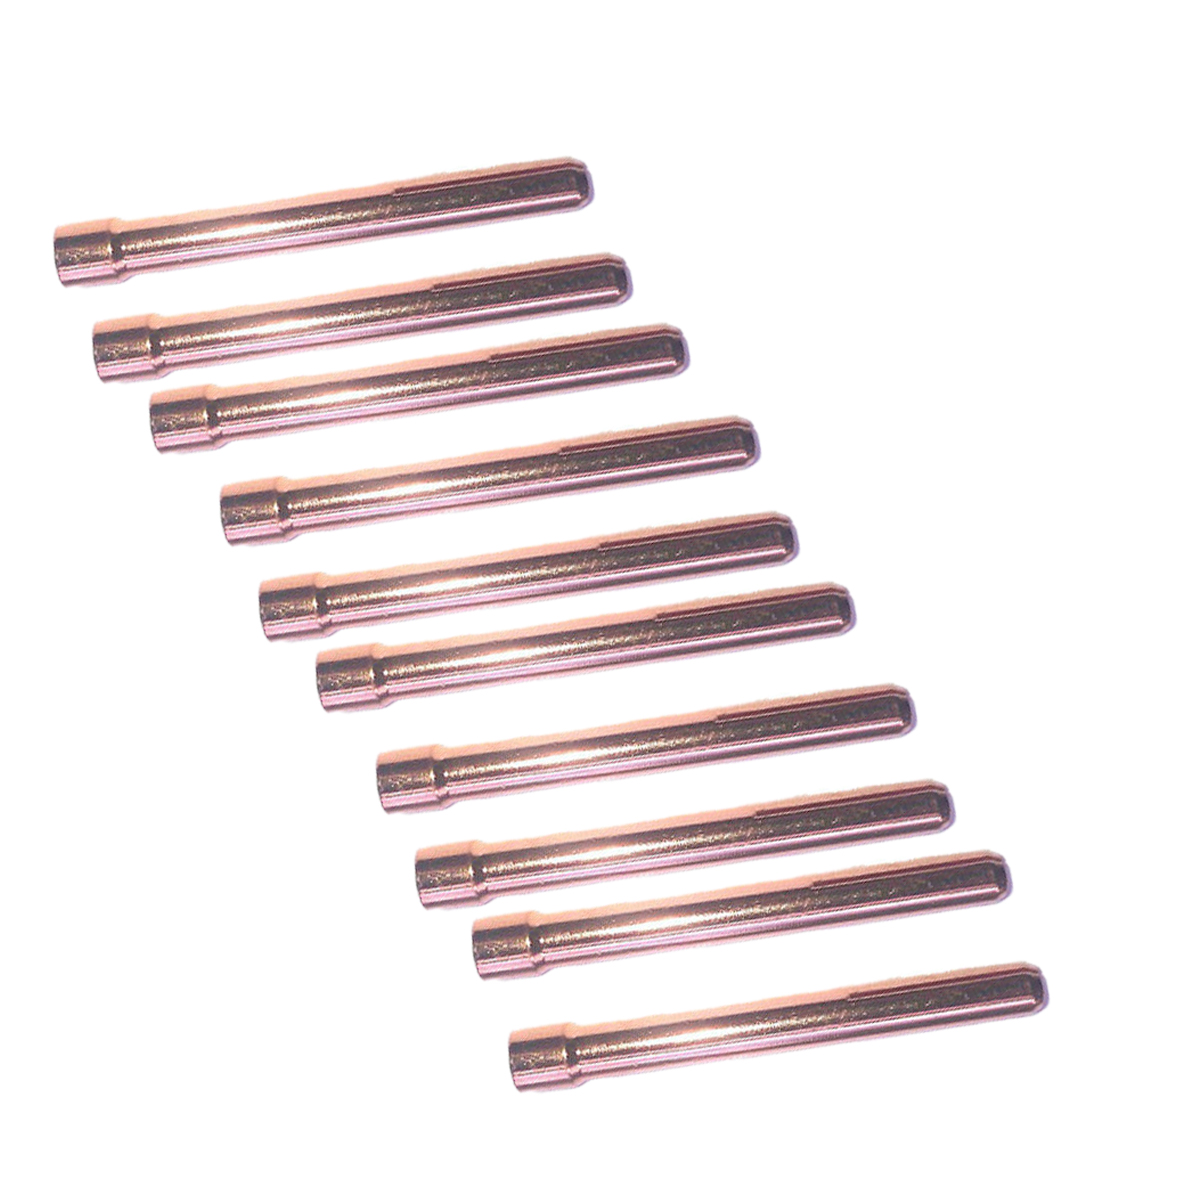 10Pcs/Set Welding Chucks Torches Welder Tools Parts Soldering Premium Quality TIG Collet 10N23 For WP-17/18/26 Torches